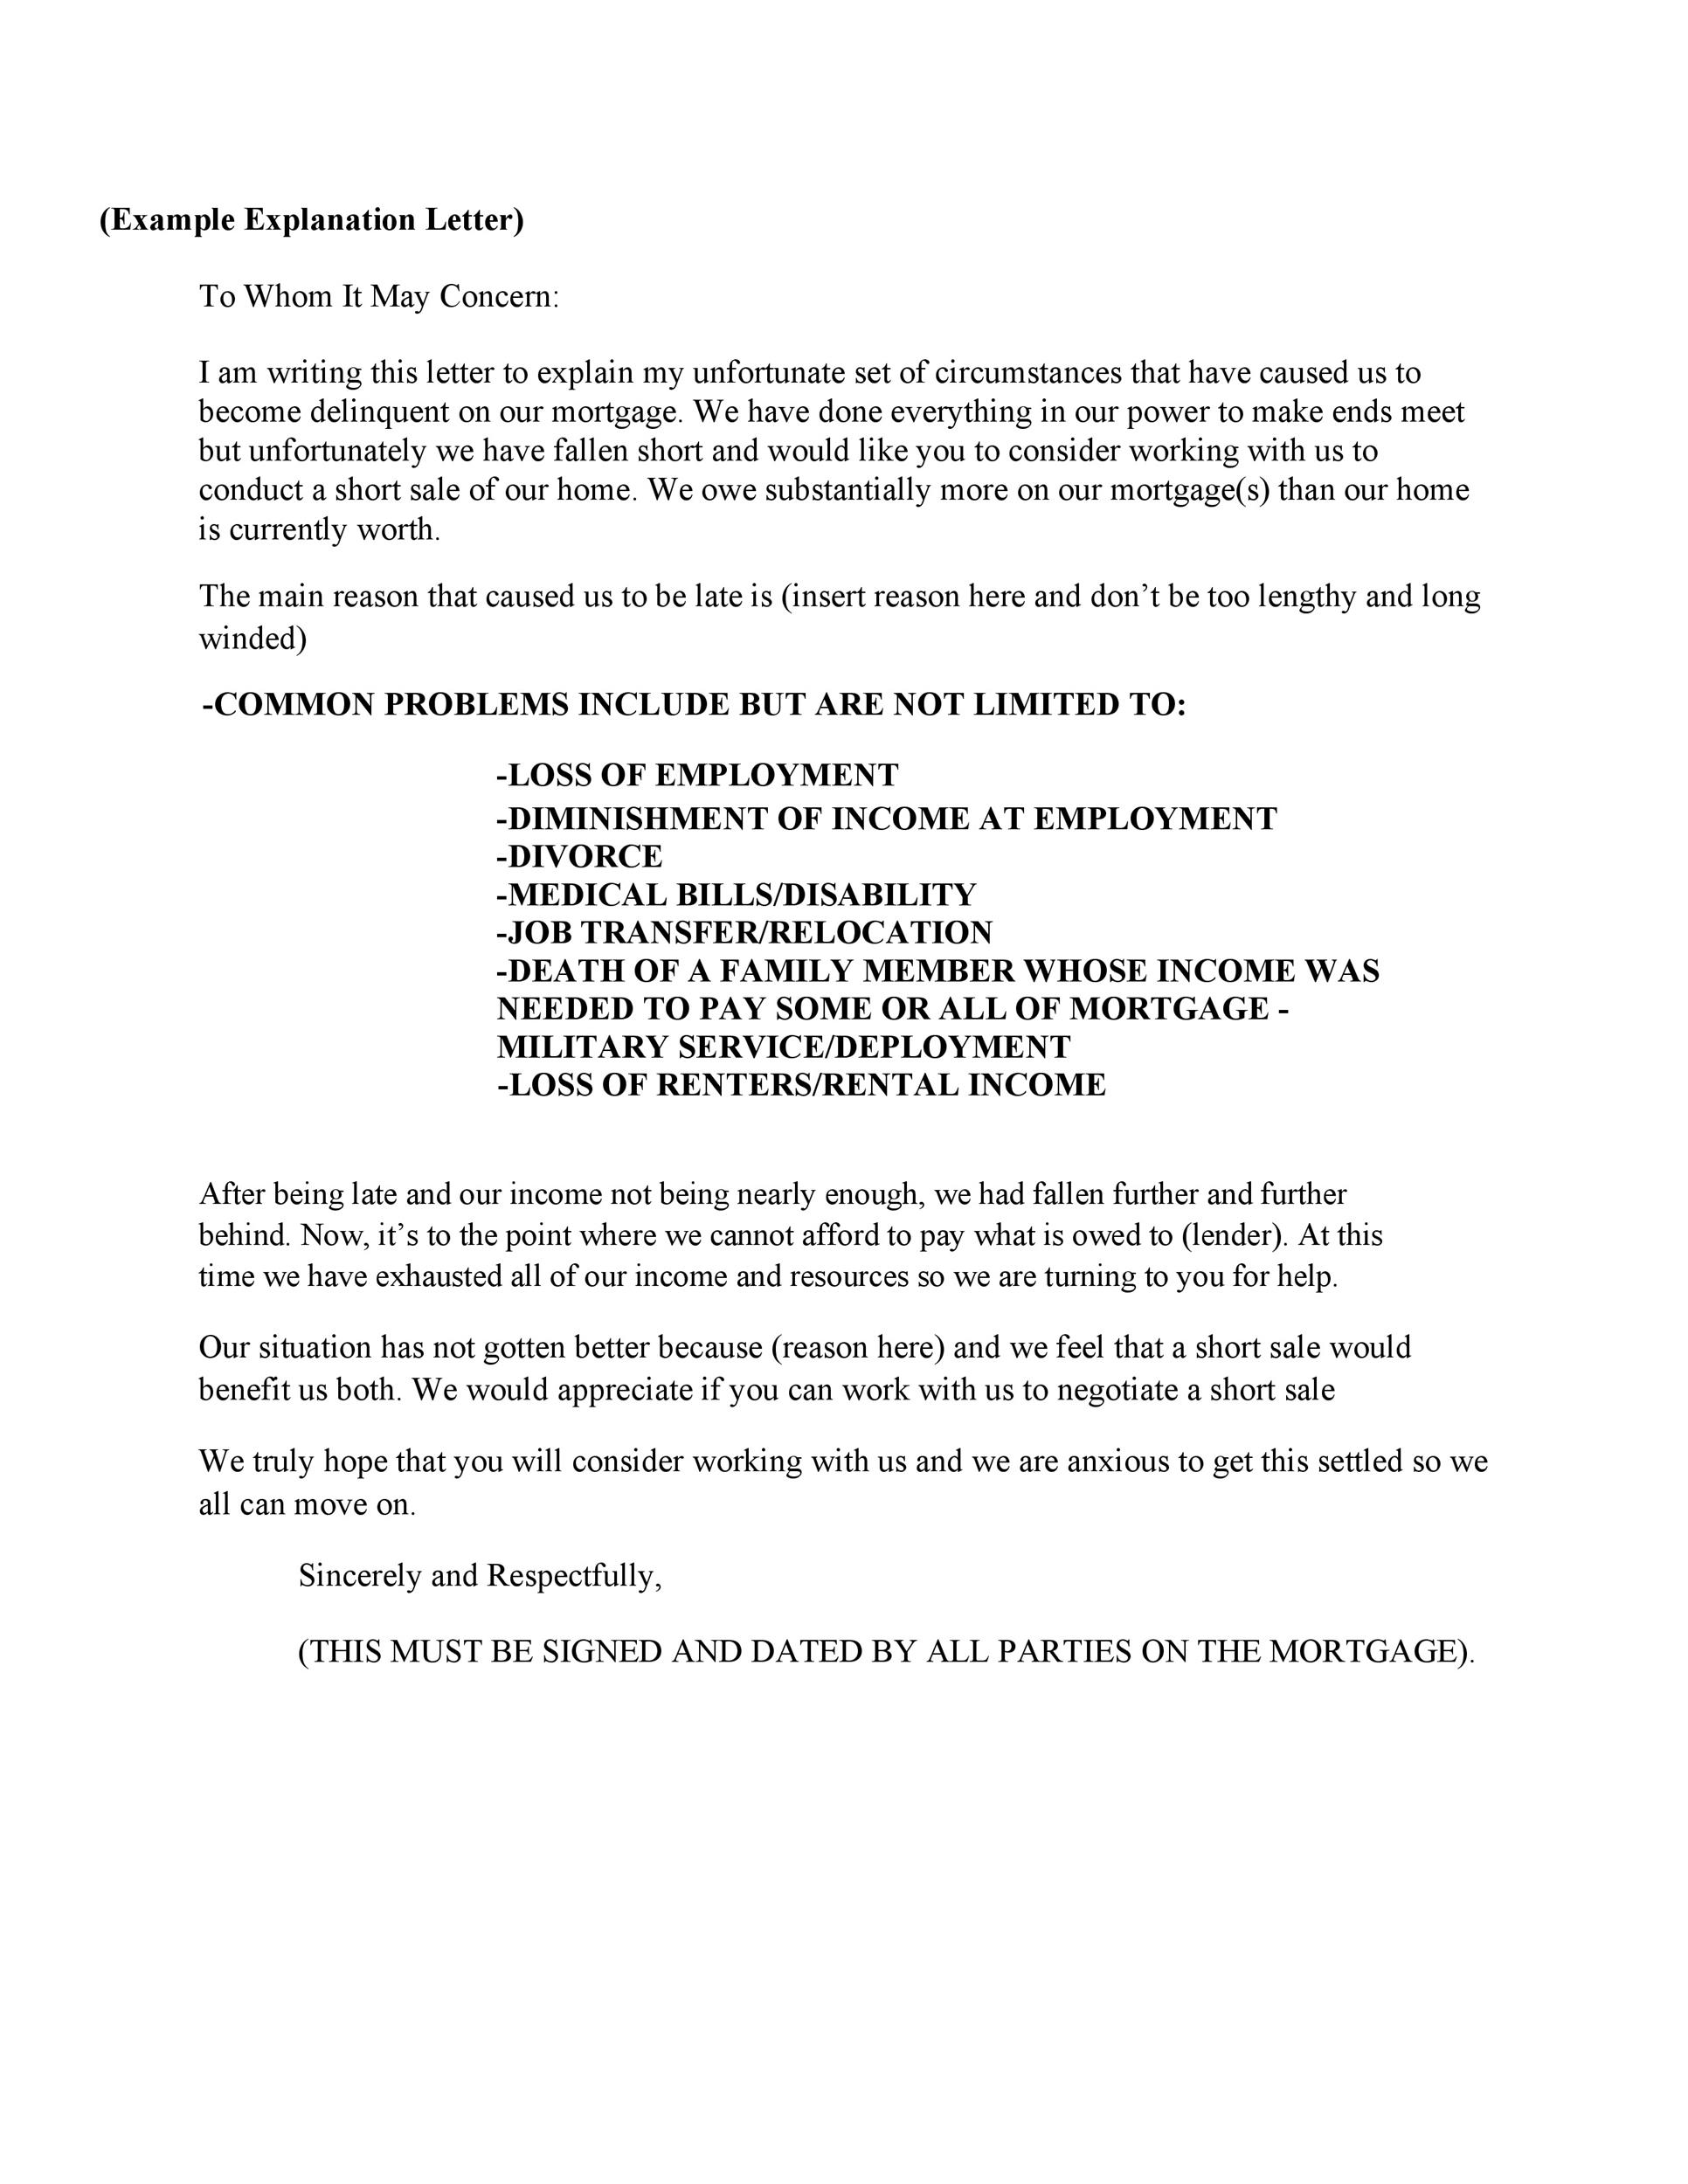 Free letter of explanation 47